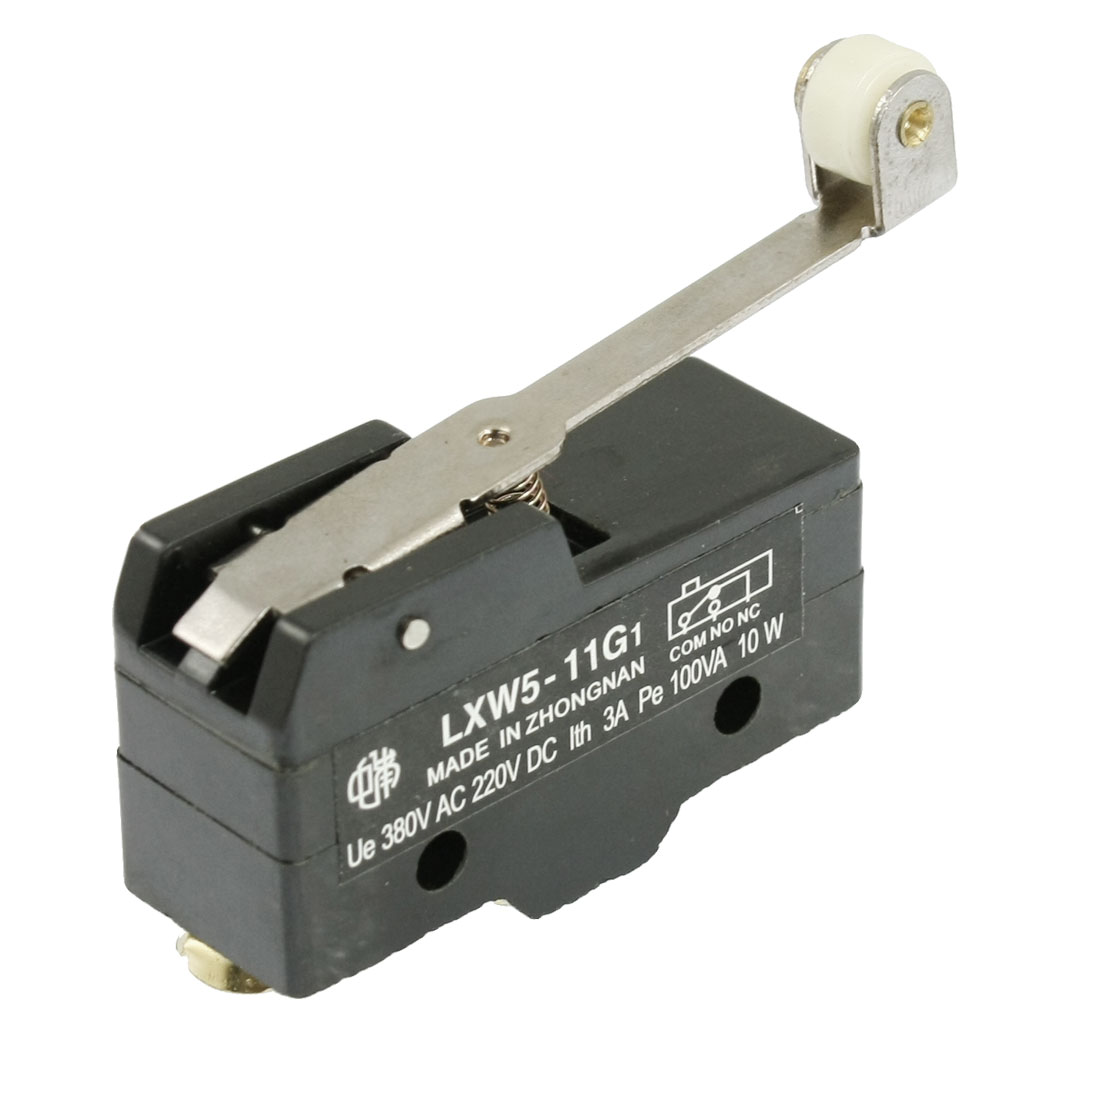 Pe 100VA 10W Ith 3A Long Hinge Roller Lever AC DC Basic Micro Switch LXW5-11G1